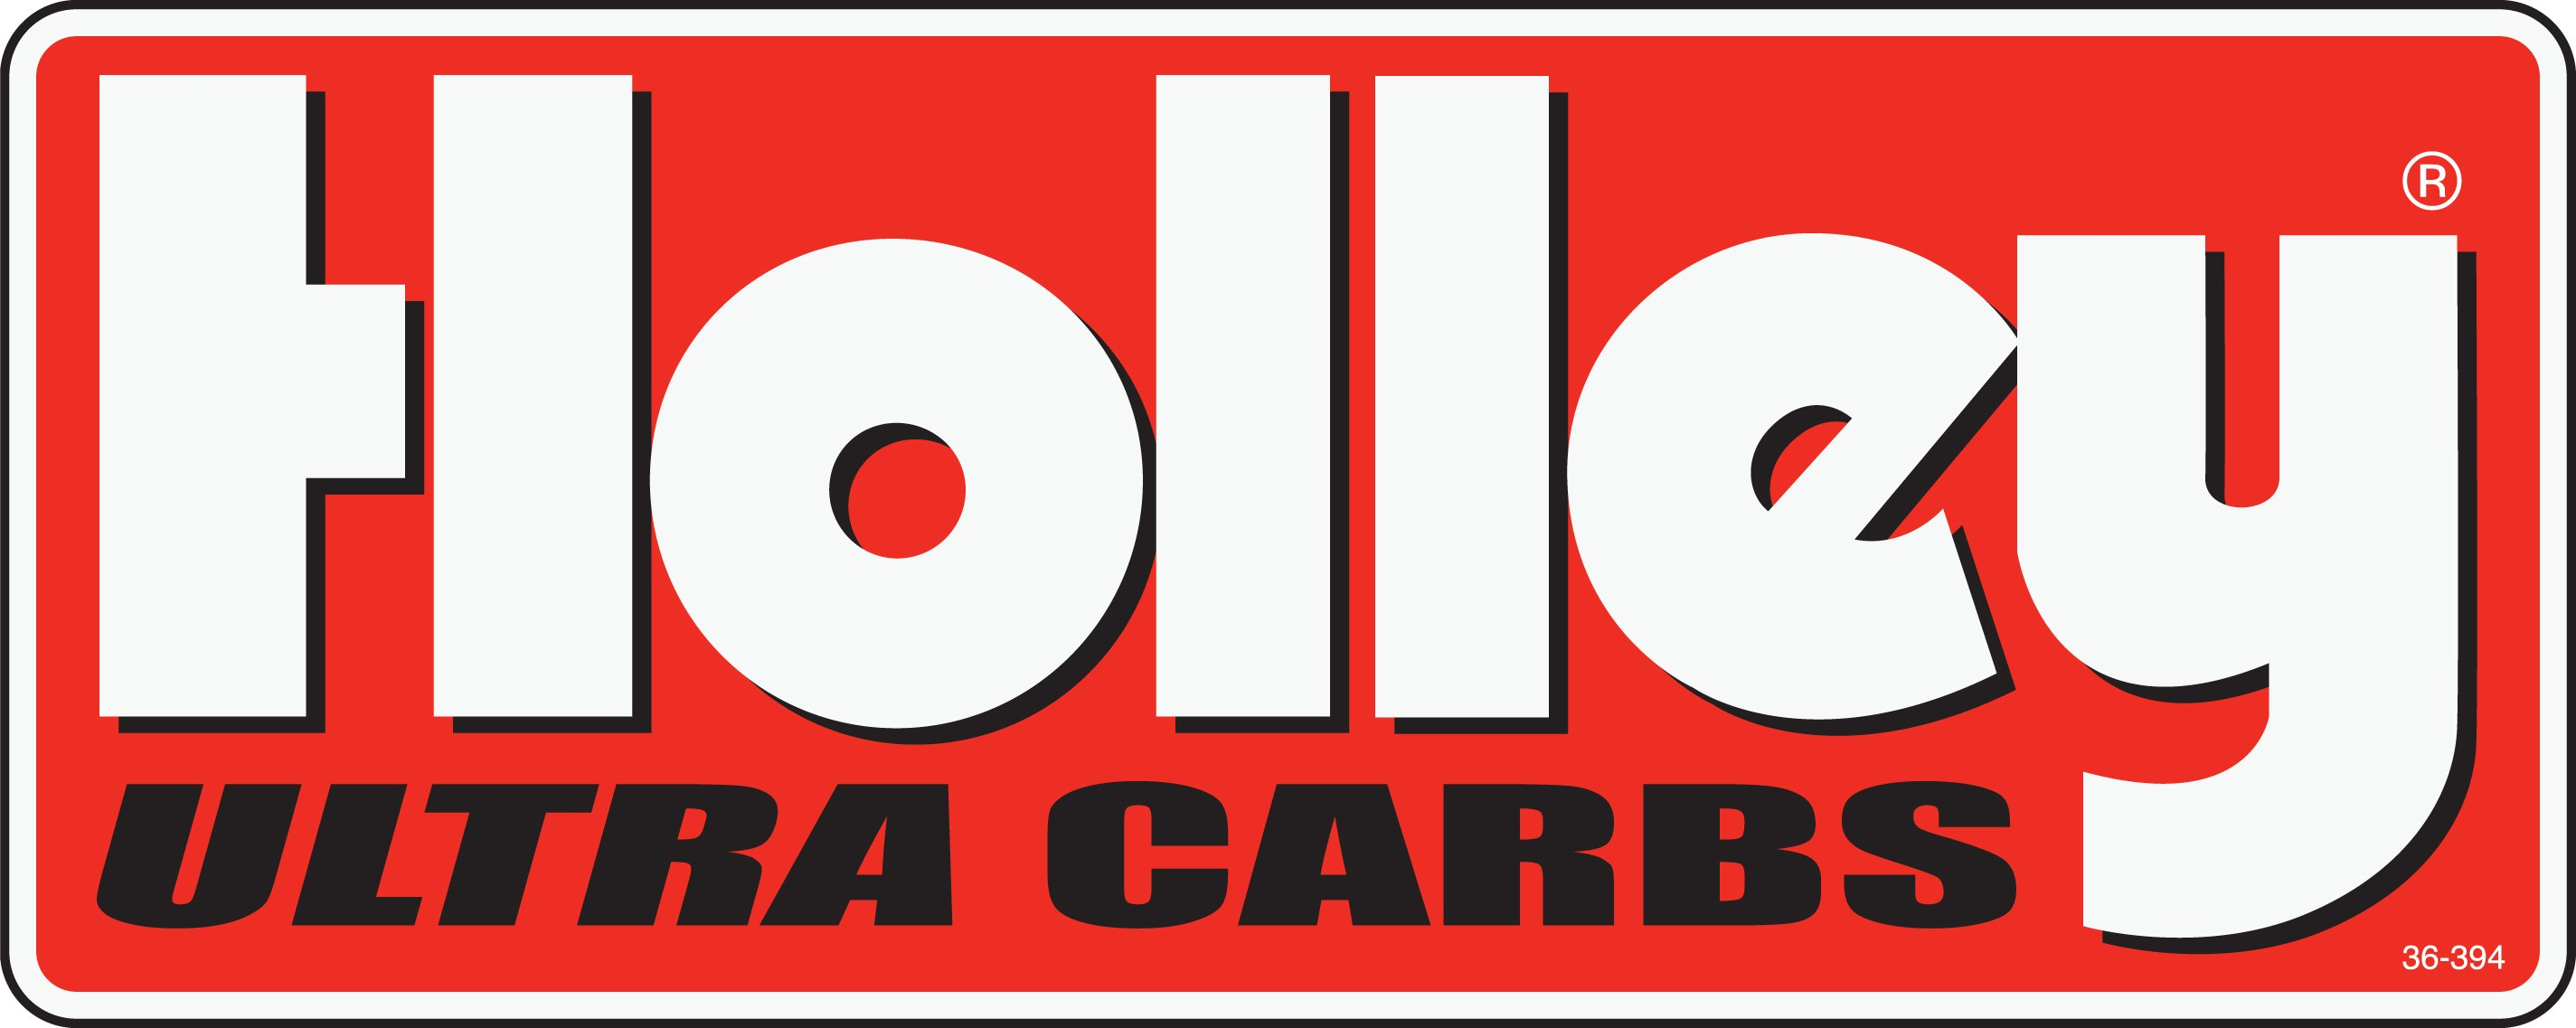 Holley Carbs Decal